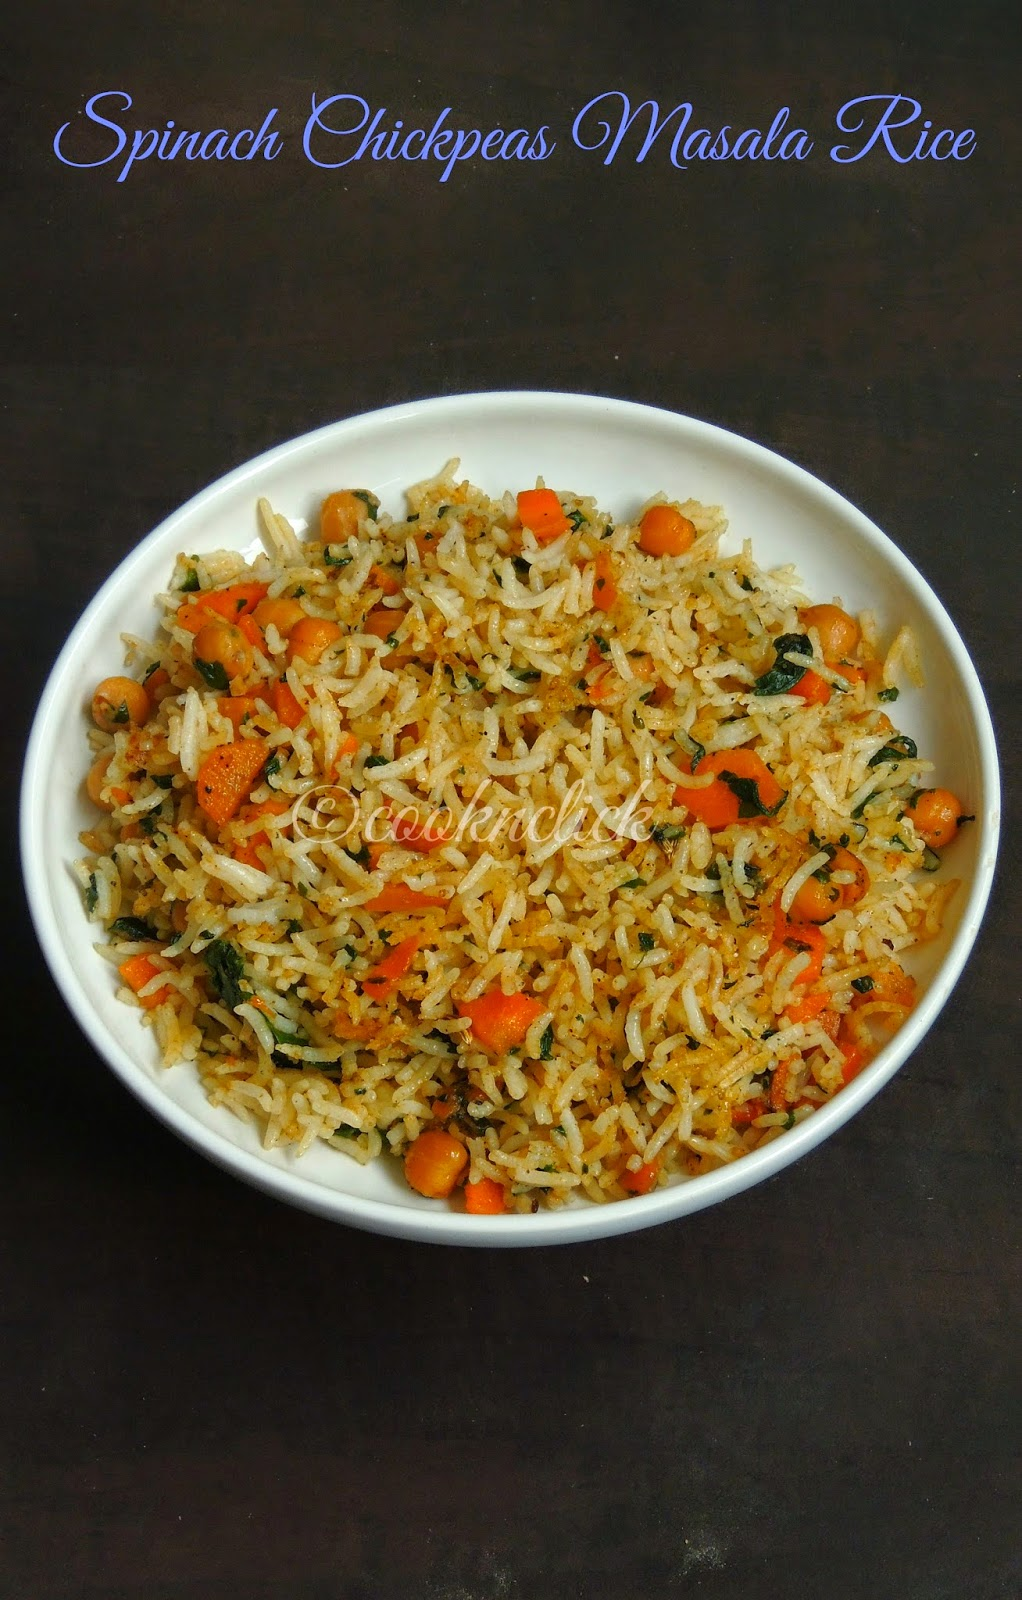 Spinach,carrot chickpeas masala rice